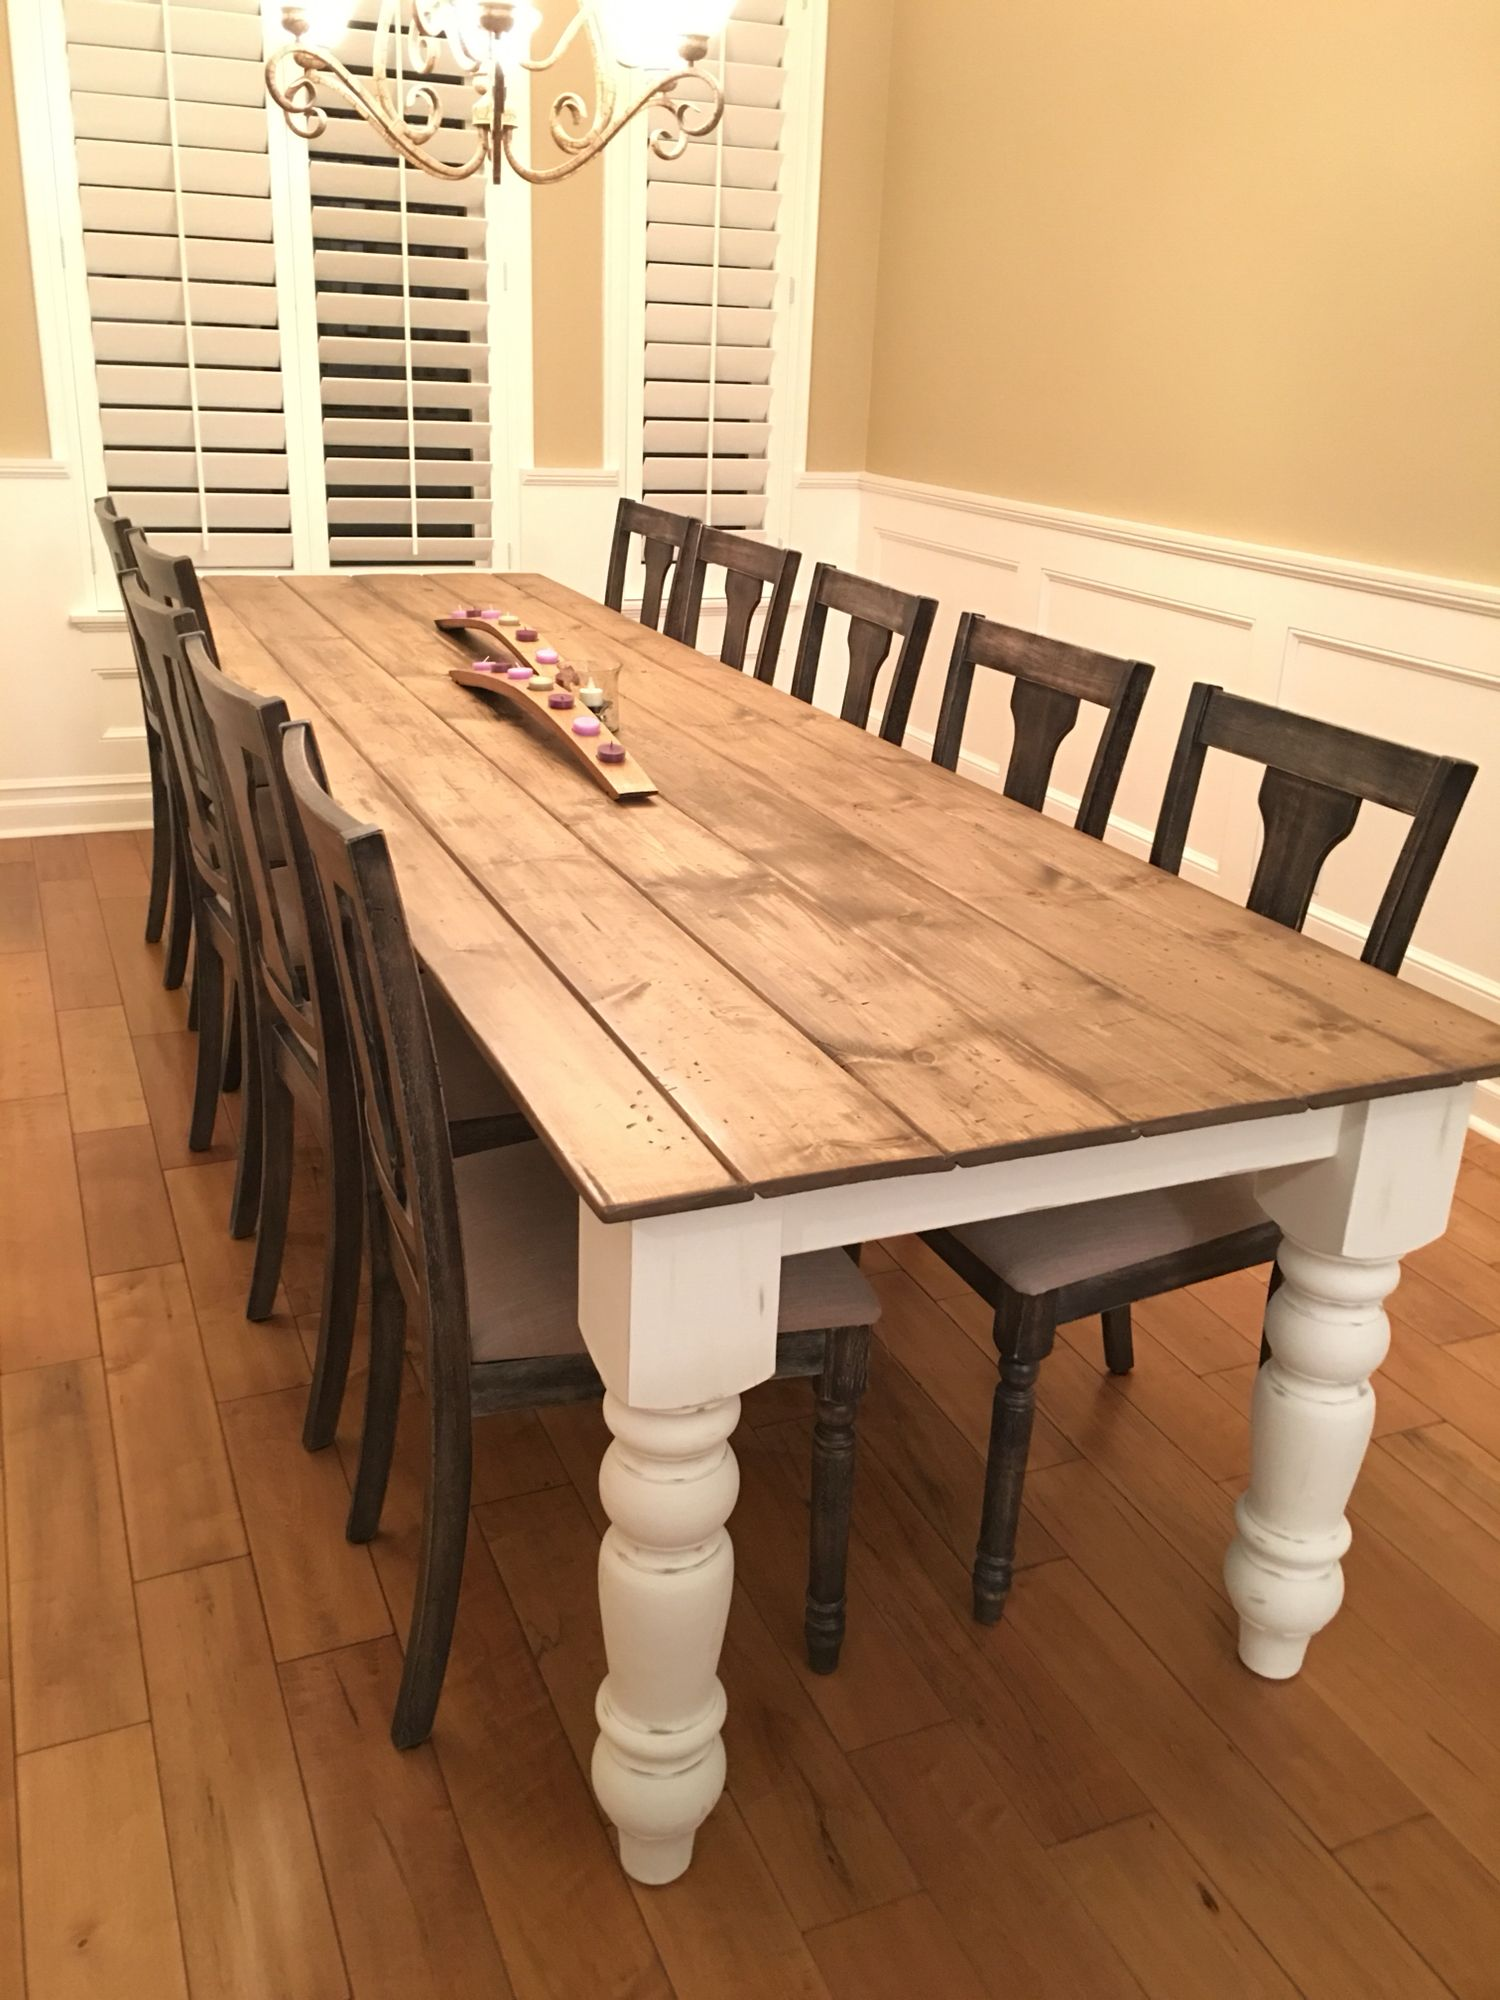 Diy Farmhouse Table My Husband Made 10 Foot 8 Inch Top